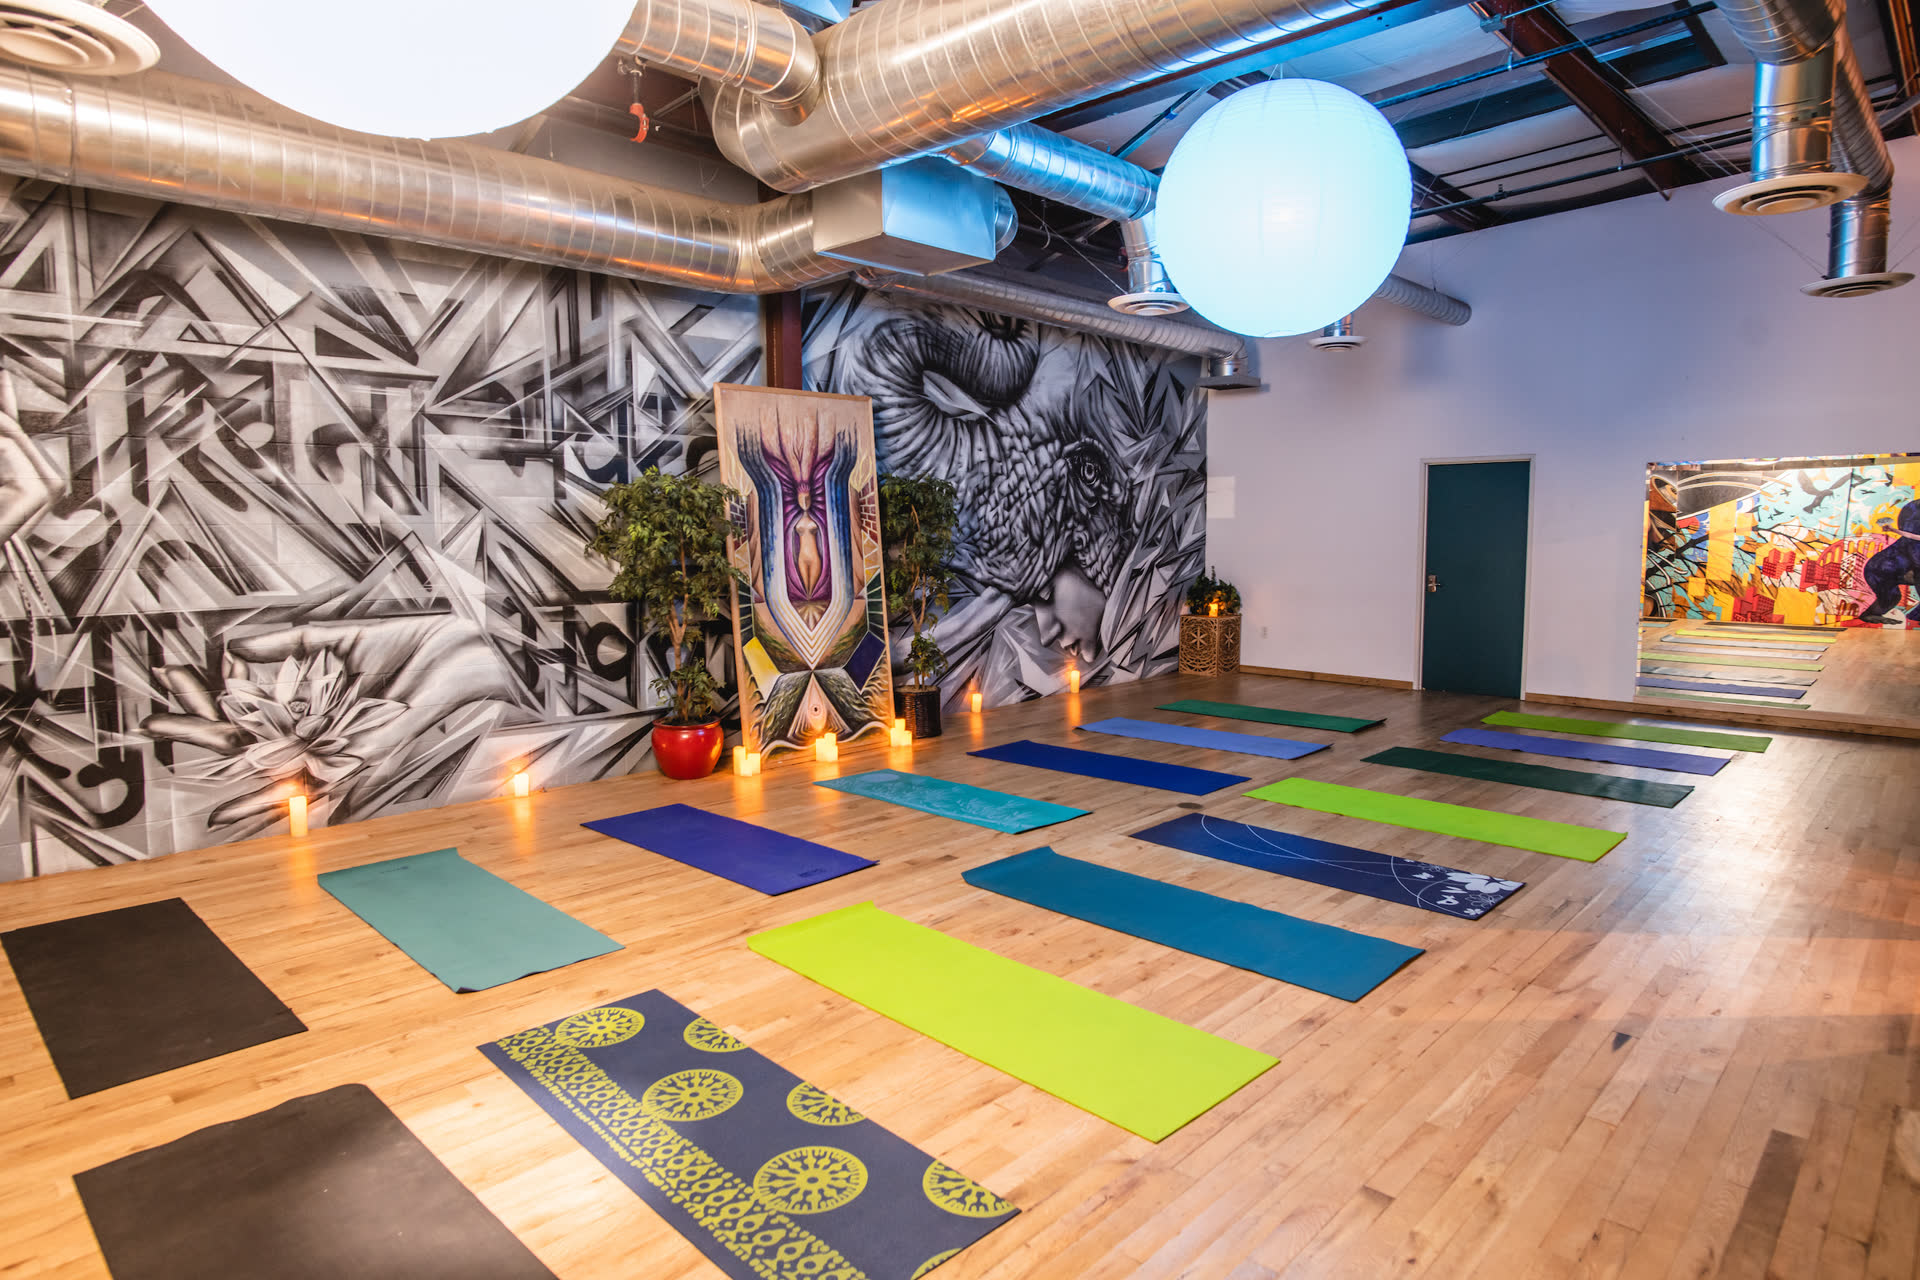 Yoga Studio spaces